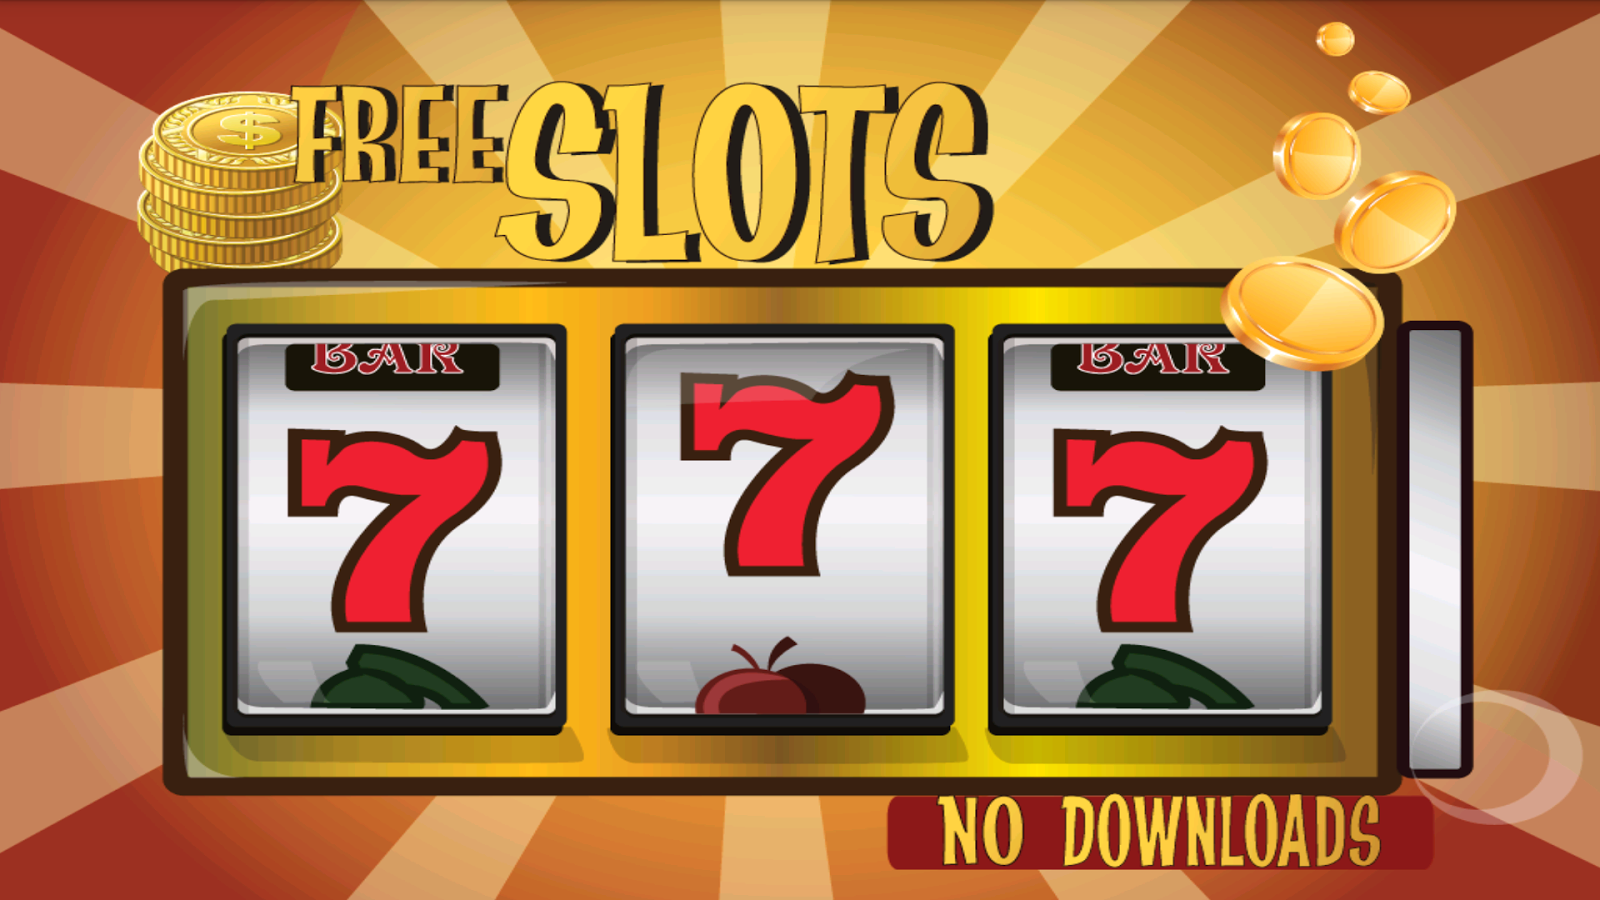 Free Vegas Slots No Downloads